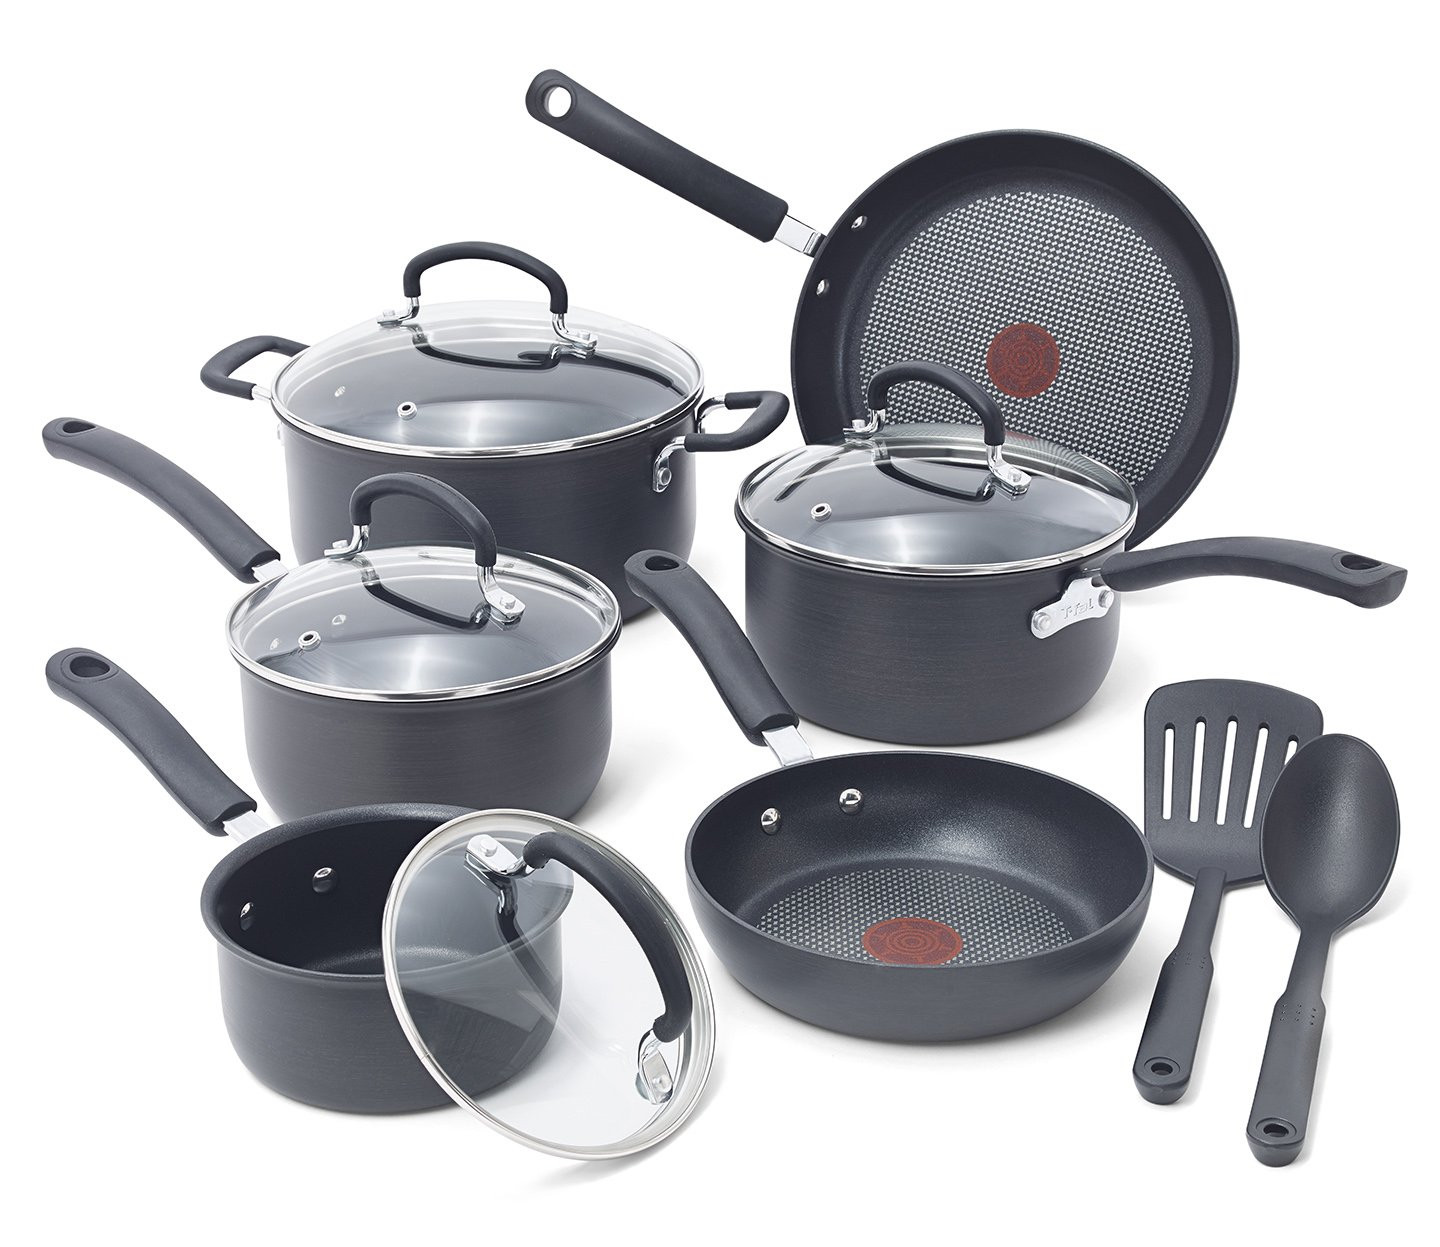 T-fal E765SC Ultimate Hard Anodized Scratch Resistant Titanium Nonstick Cookware